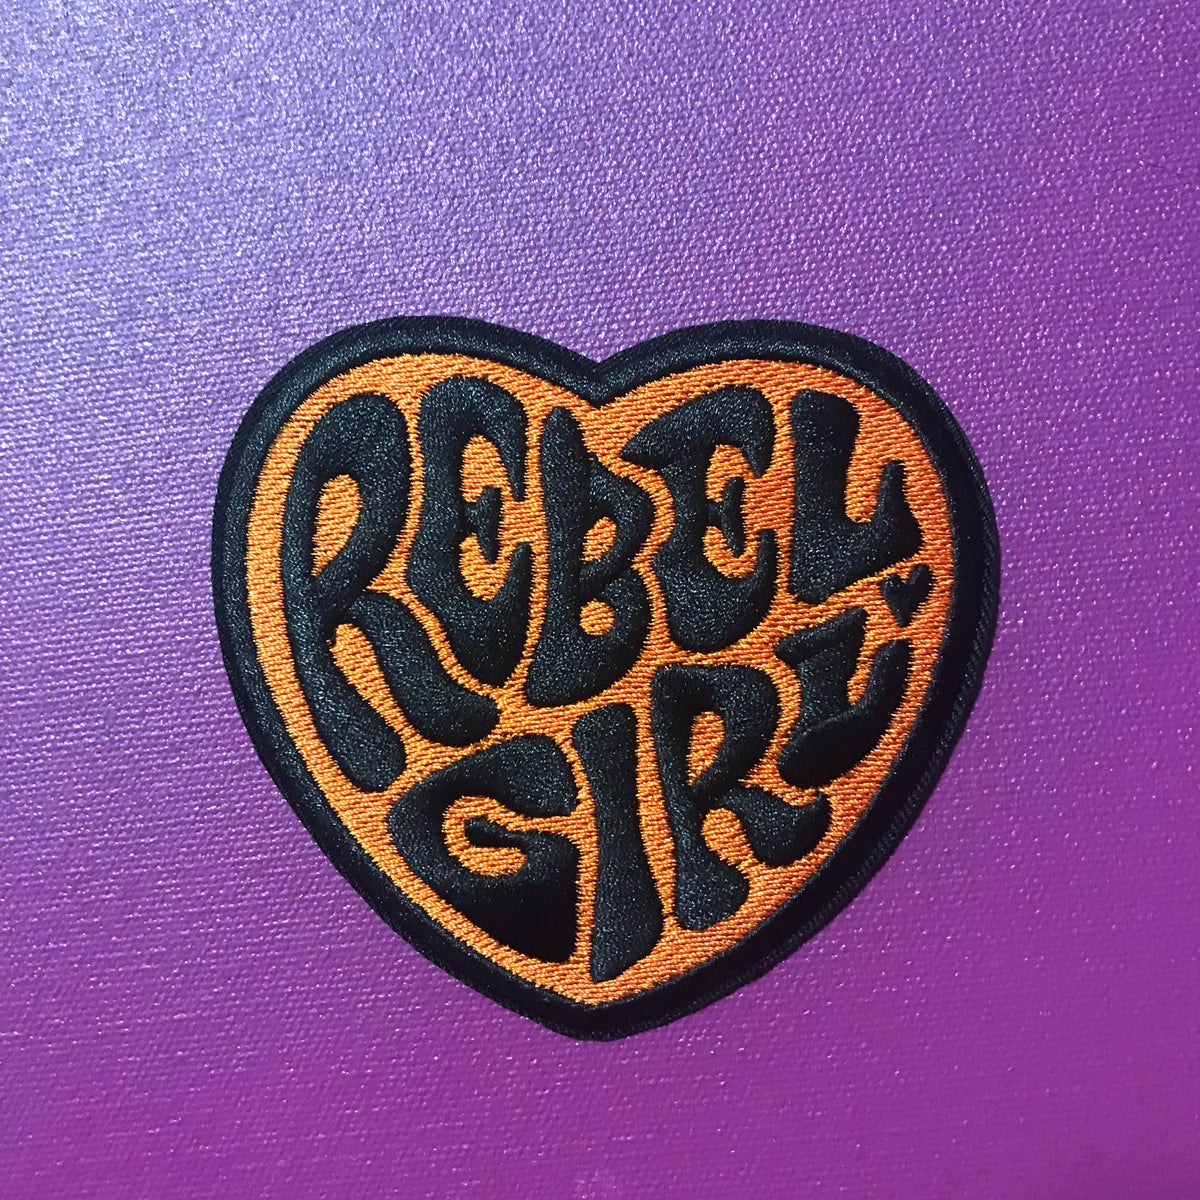 Image of Rebel Girl Heart Patch